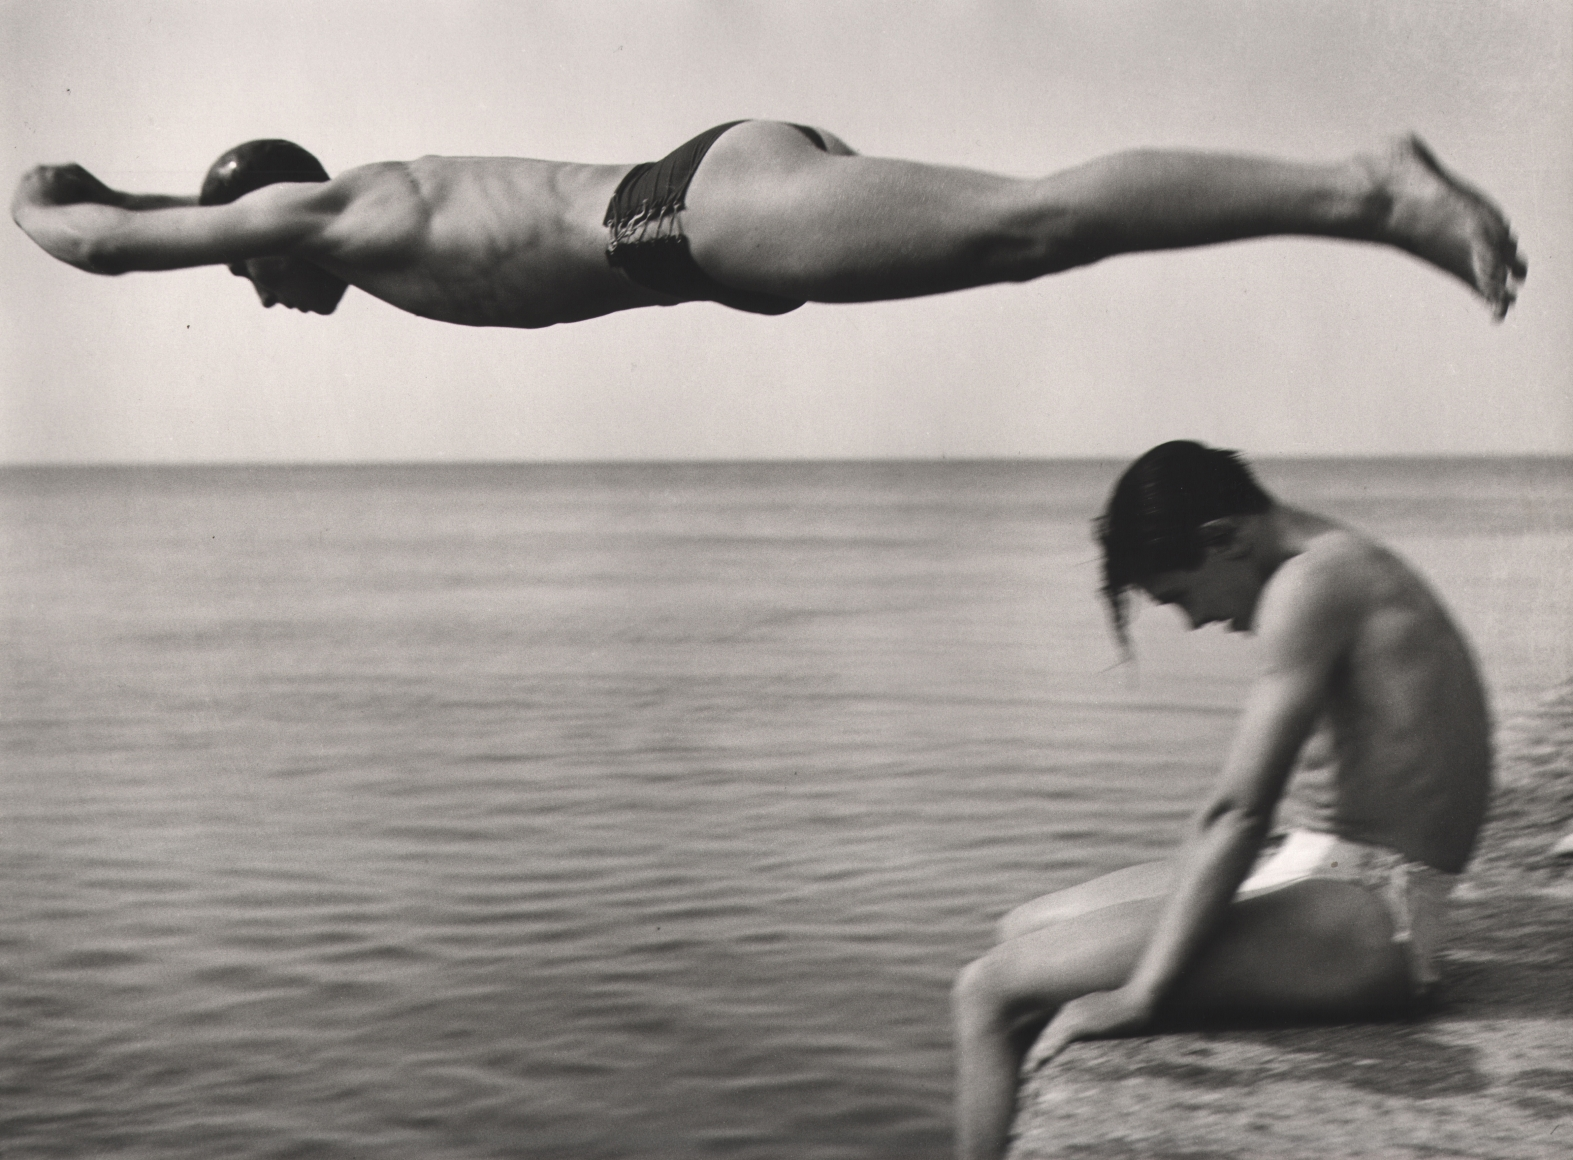 Nino Migliori, The Diver, 1951. One man jumps over another into the ocean.